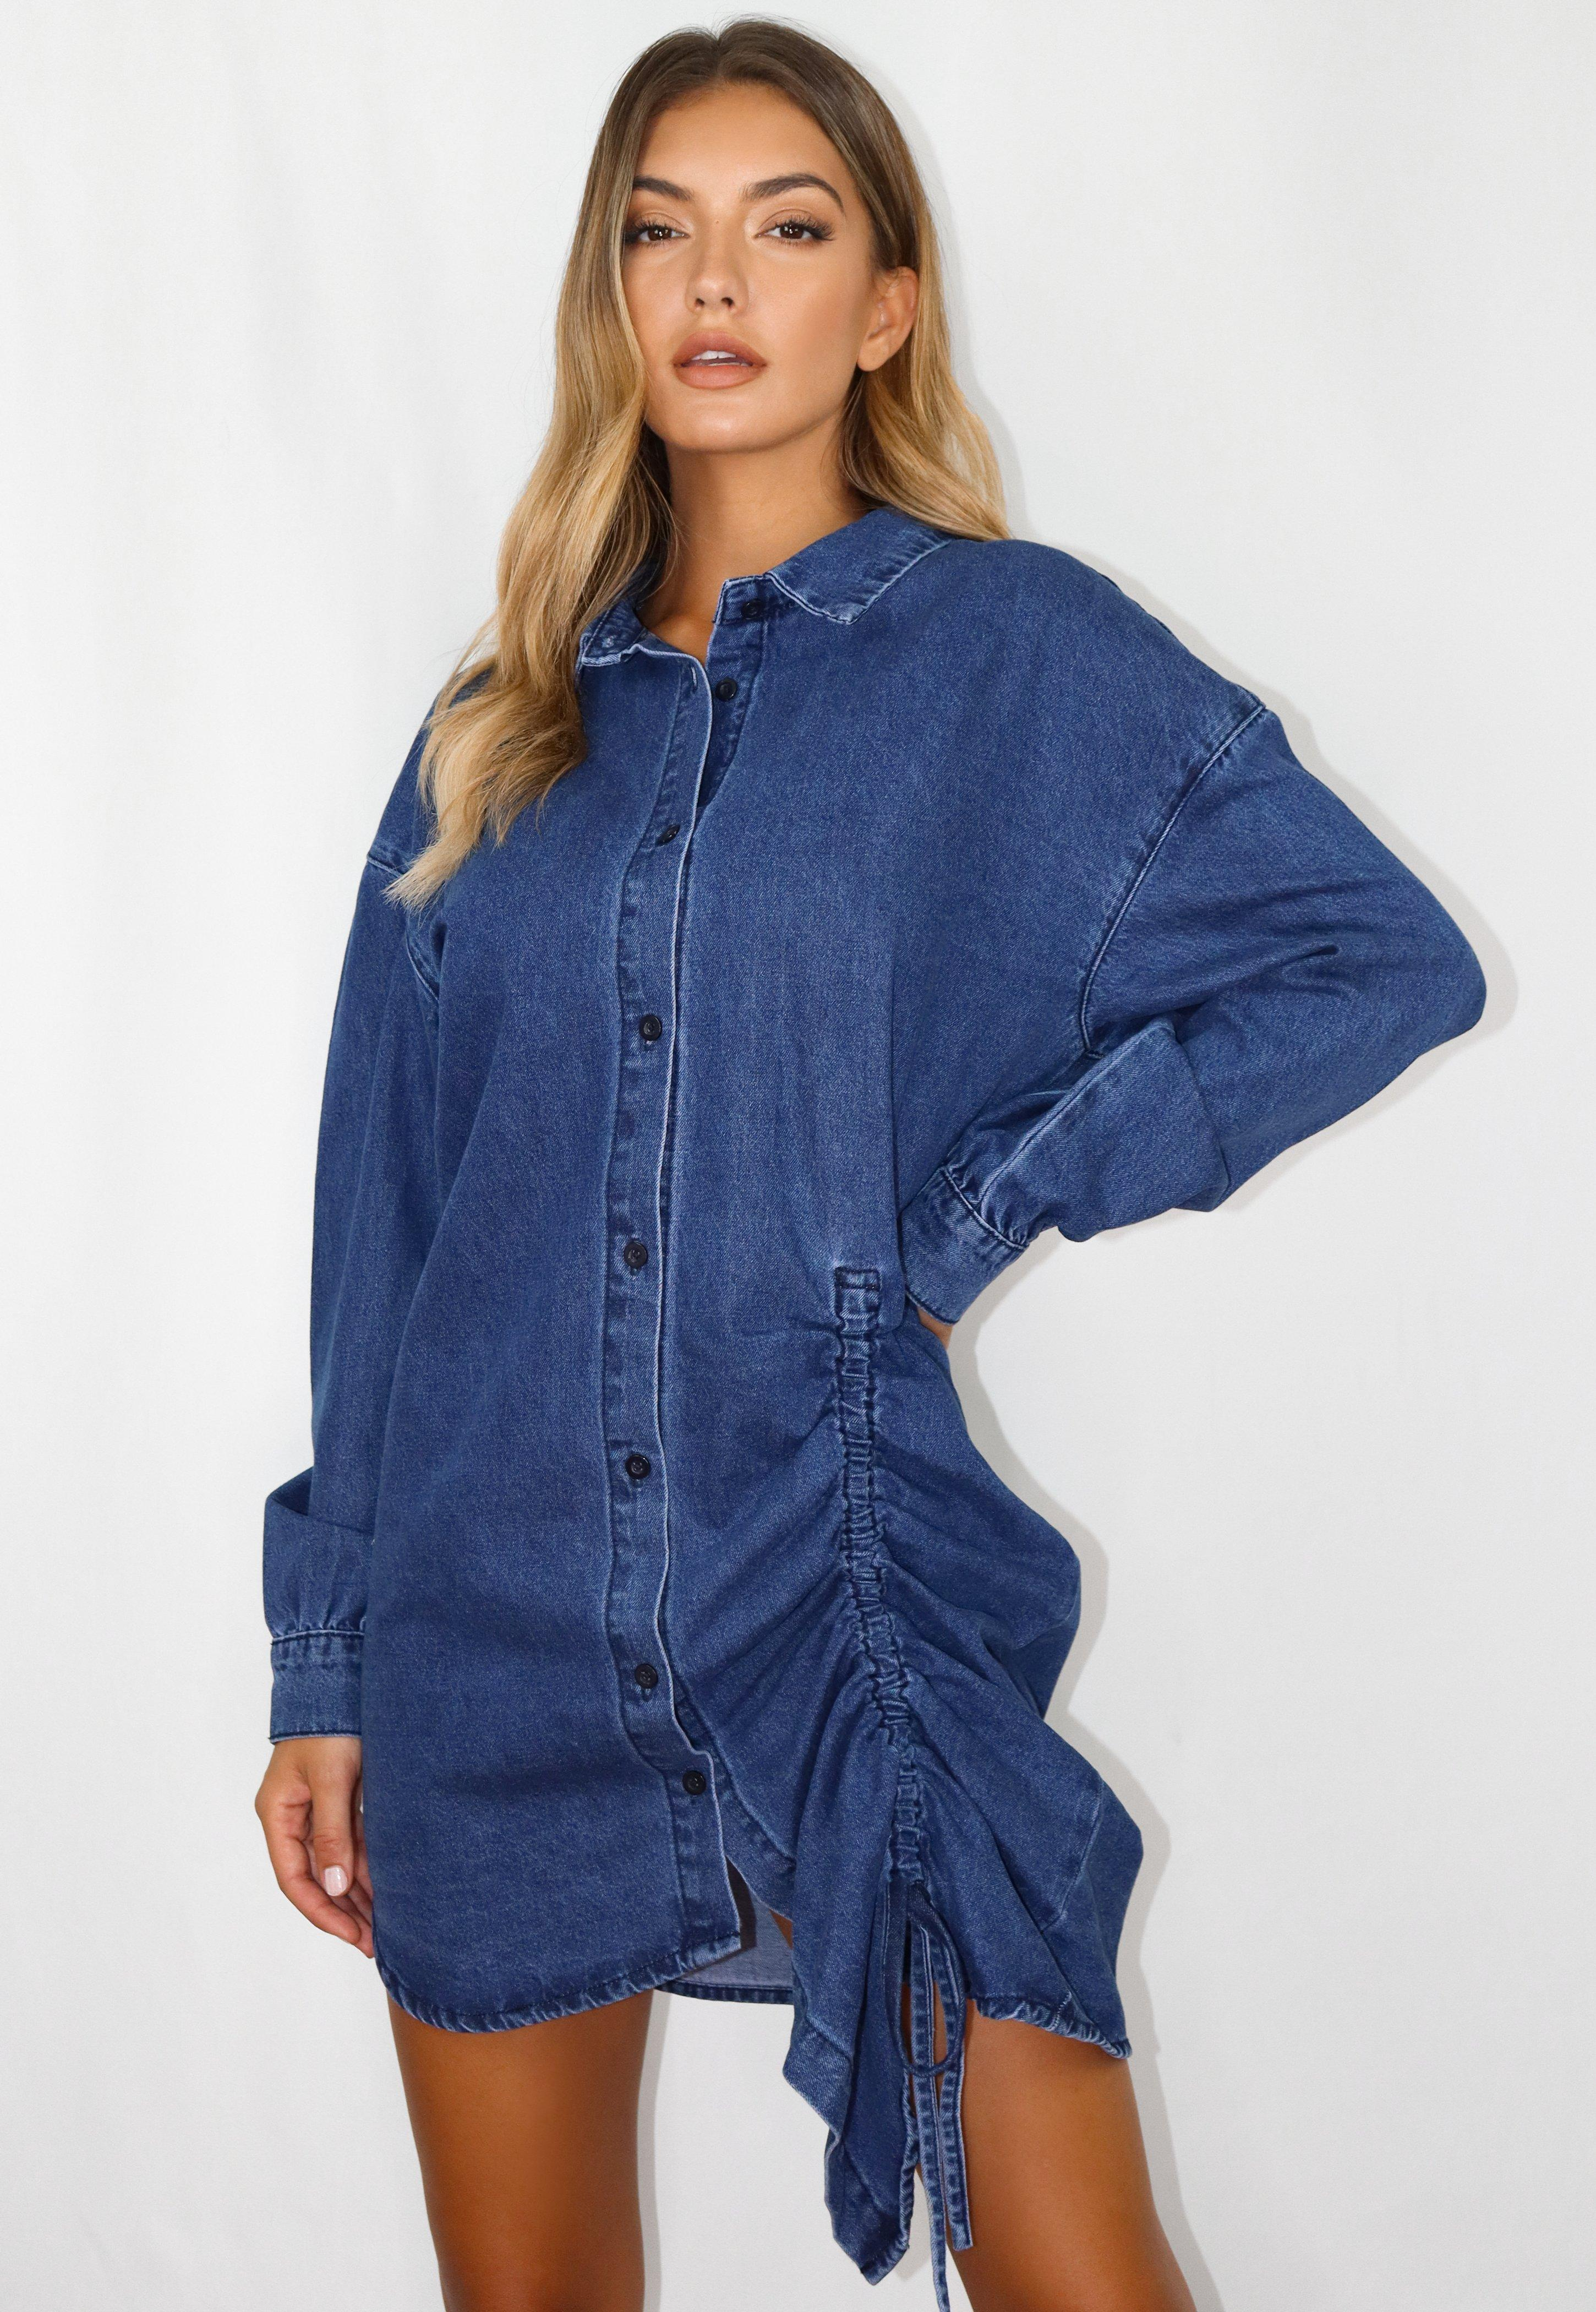 Robe Chemise Bleue Froncee En Jean Missguided